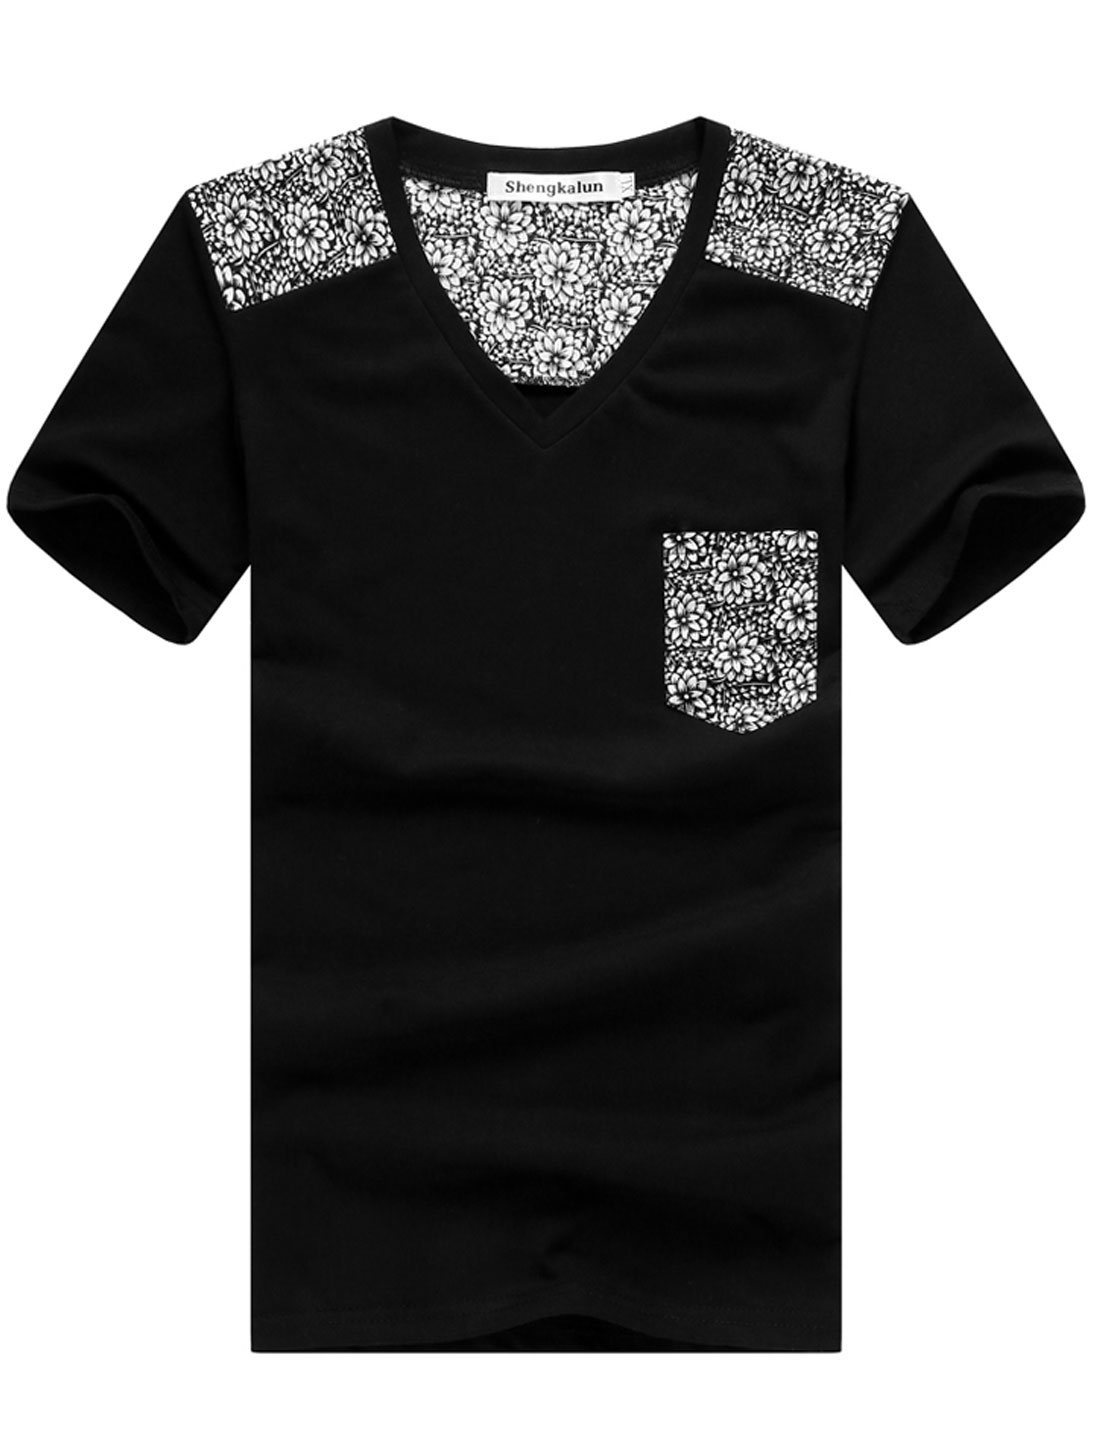 Men V Neck Short Sleeve Floral Prints Spliced Style T-Shirt Black S